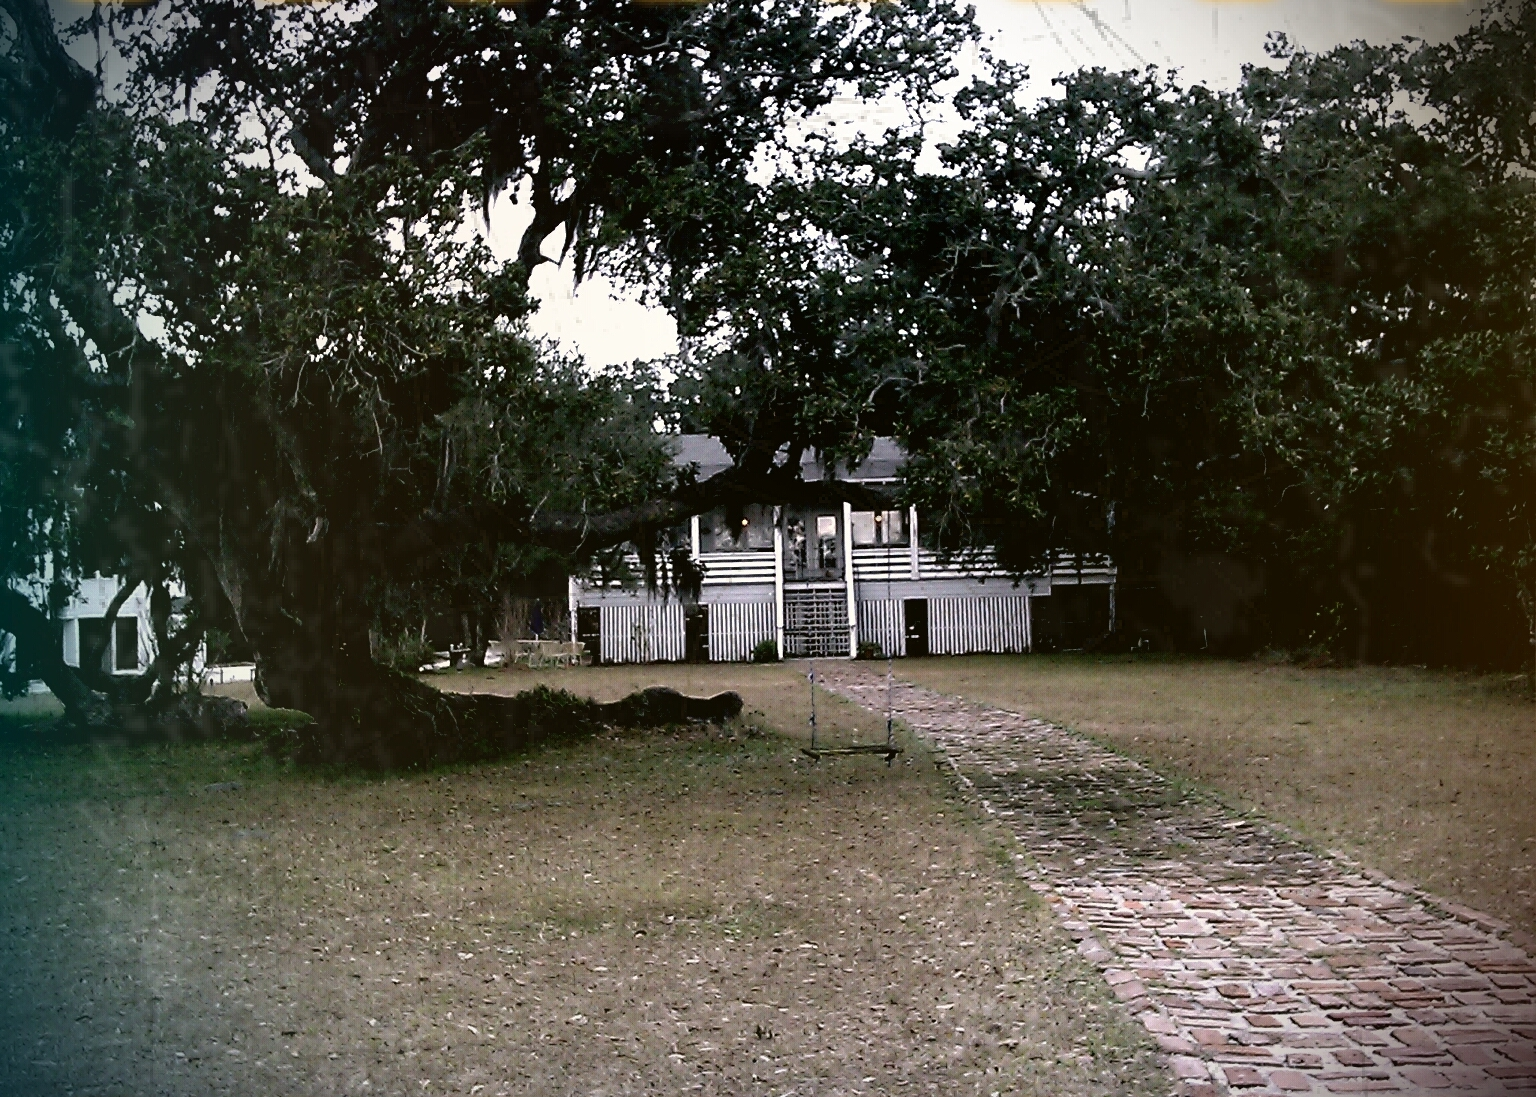 Imobilebay Community News Real Estate With Tamatha Mcelmurry Broker Realtor Fairhope Alabama For Sale Point Clear Grand Hotel Boardwalk Home 100 Mobile Bay Lot